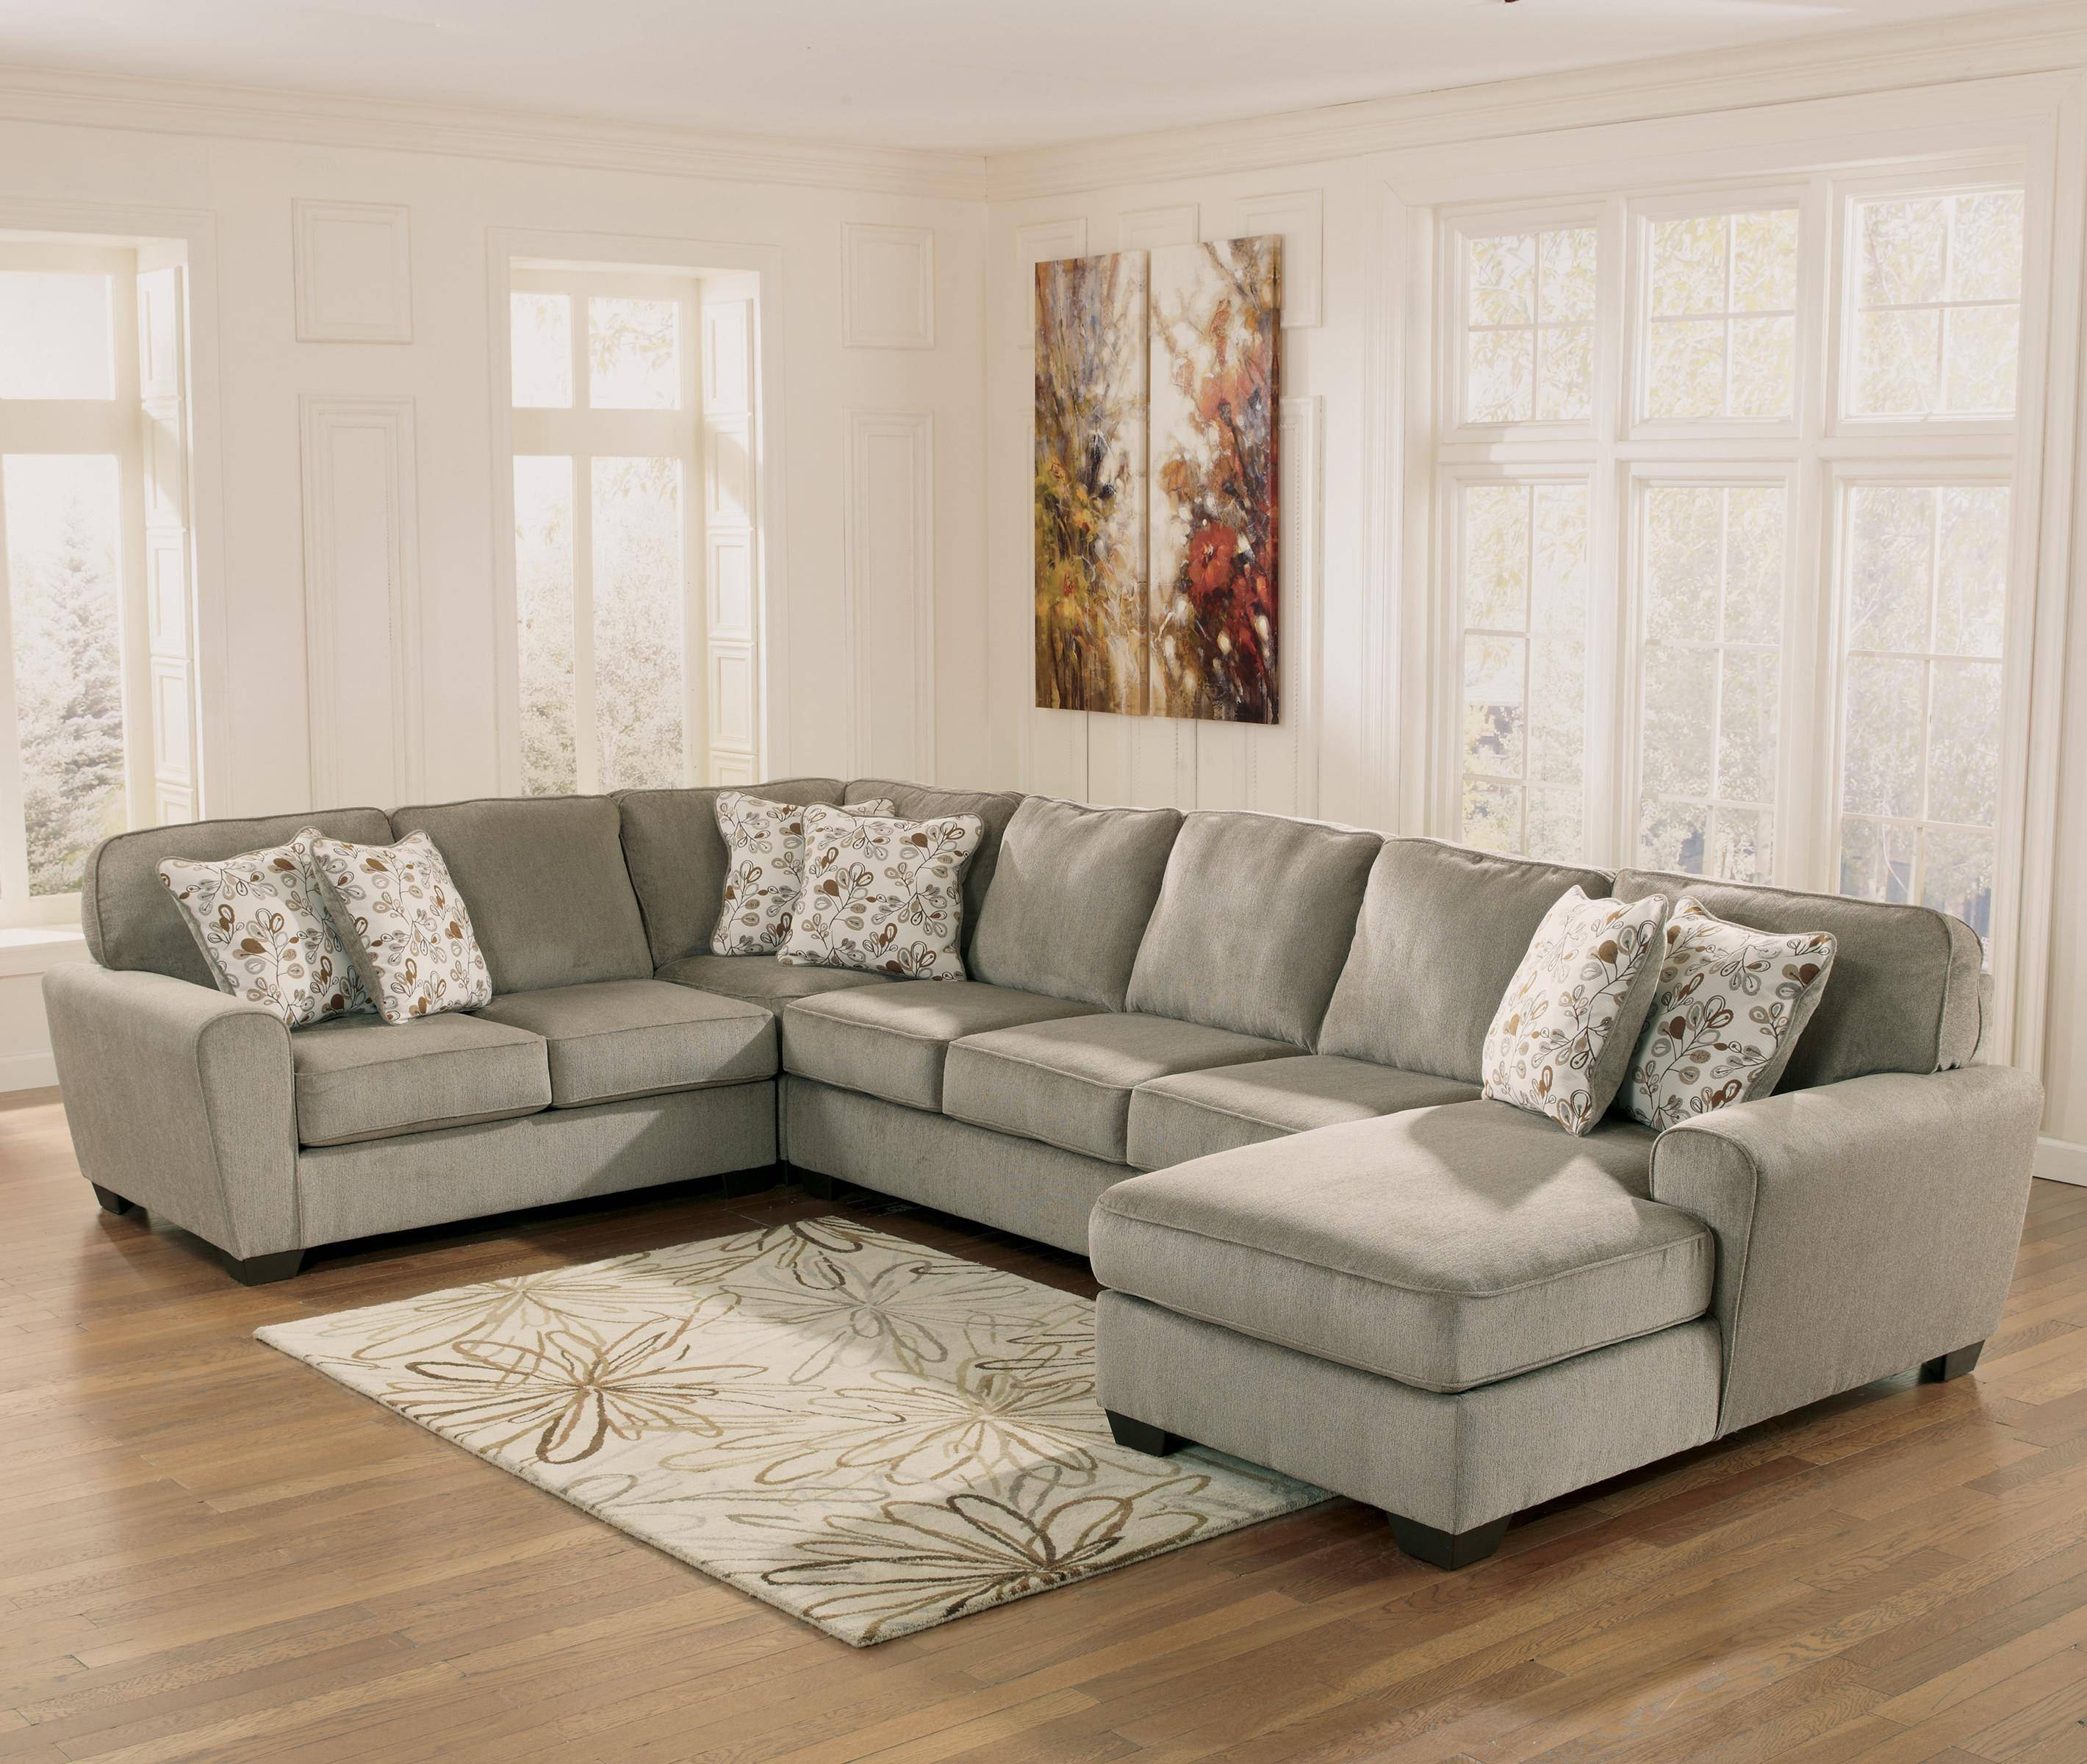 Ashley Furniture Patola Park - Patina 4-Piece Sectional With Right inside Ashley Furniture Brown Corduroy Sectional Sofas (Image 3 of 15)